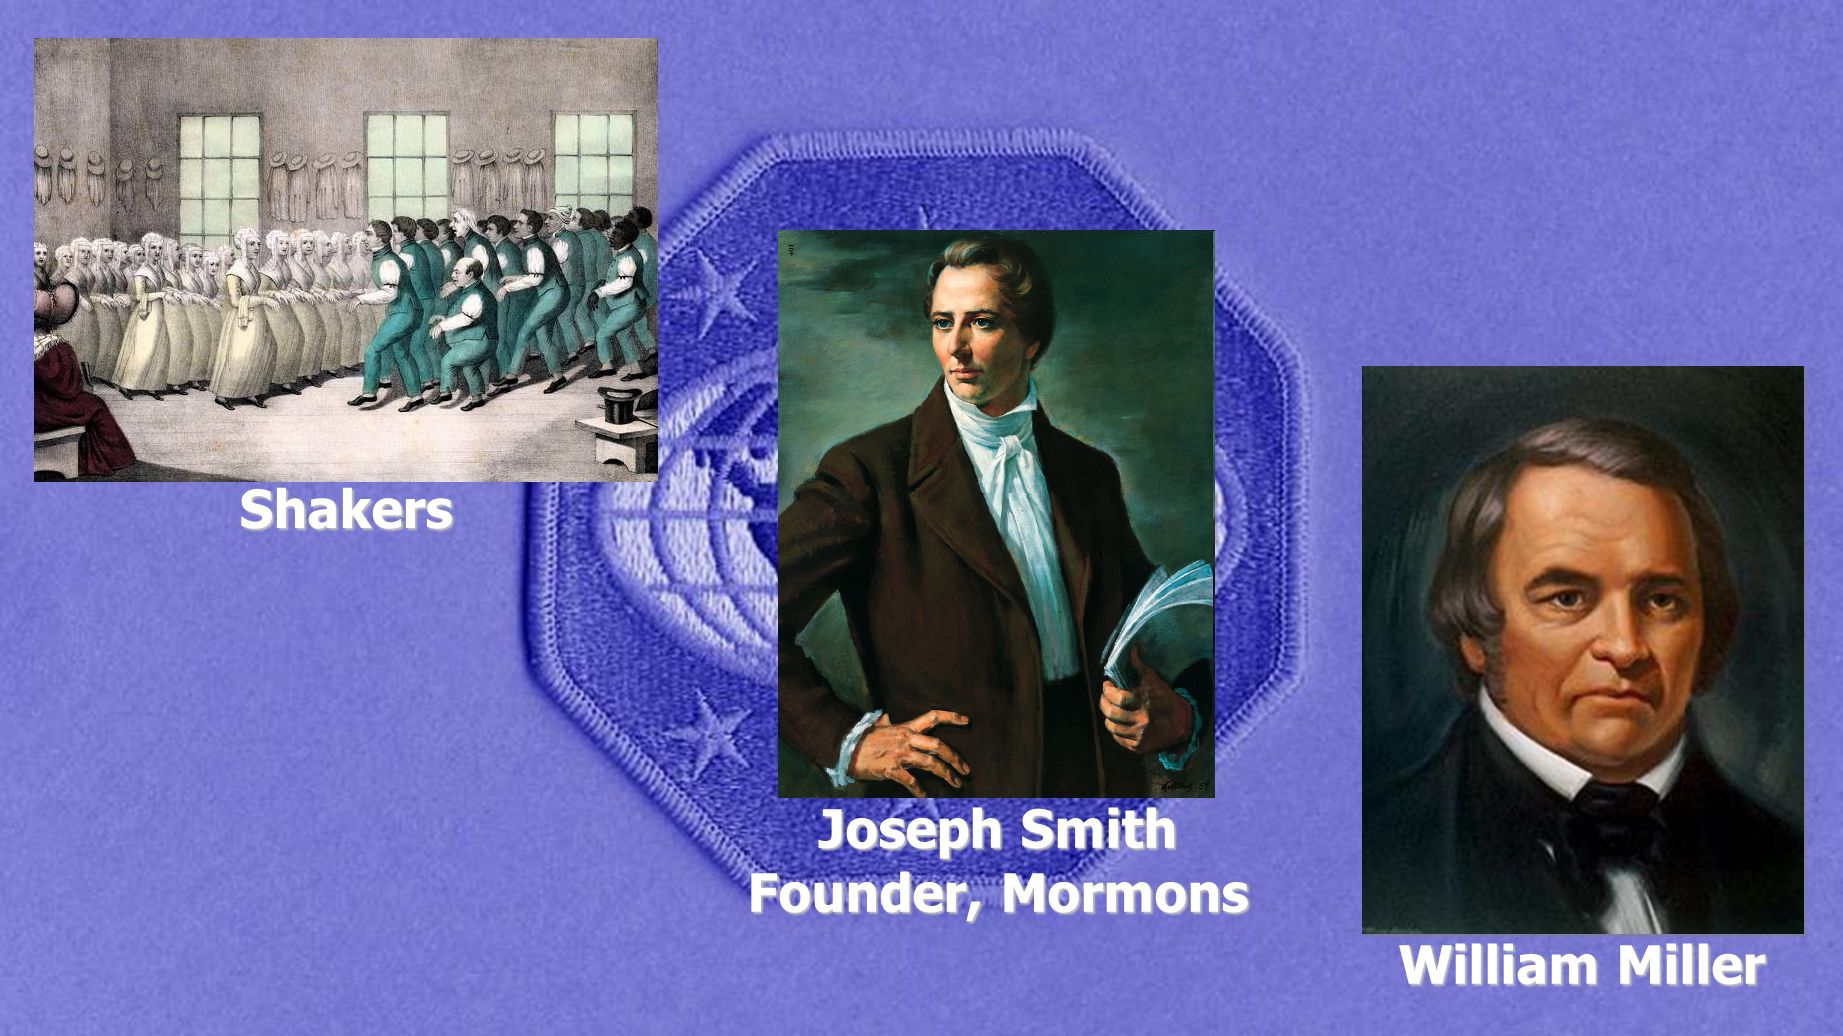 Joseph Smith Founder, Mormons